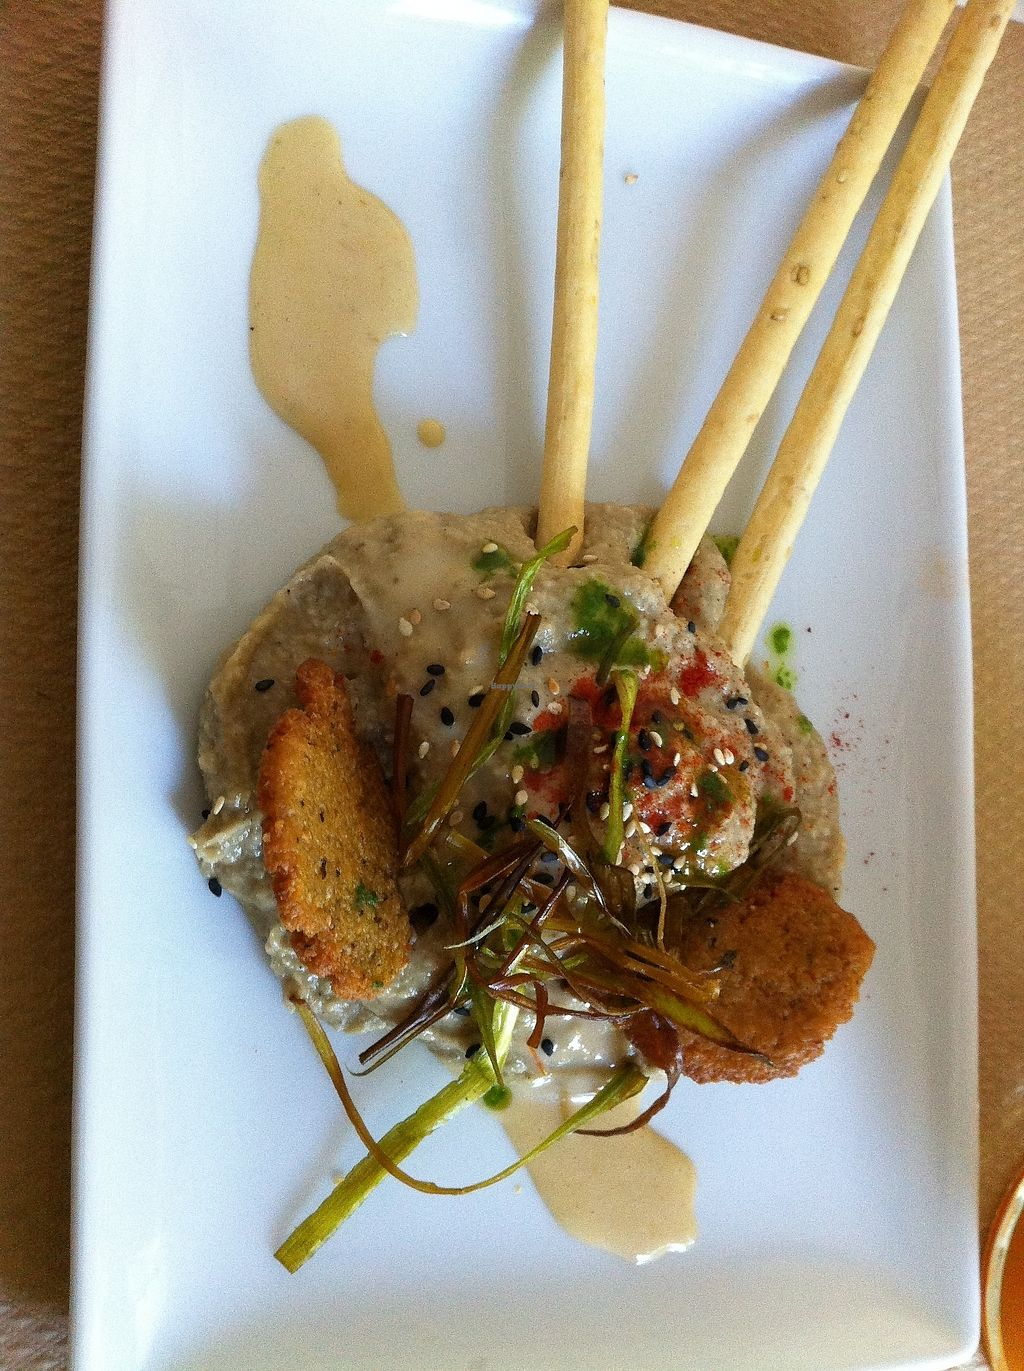 """Photo of Nomit  by <a href=""""/members/profile/Vegane_Globetrotterin"""">Vegane_Globetrotterin</a> <br/>homemade spread of artichokes as the starter of the menu of the day <br/> July 2, 2017  - <a href='/contact/abuse/image/74396/275918'>Report</a>"""